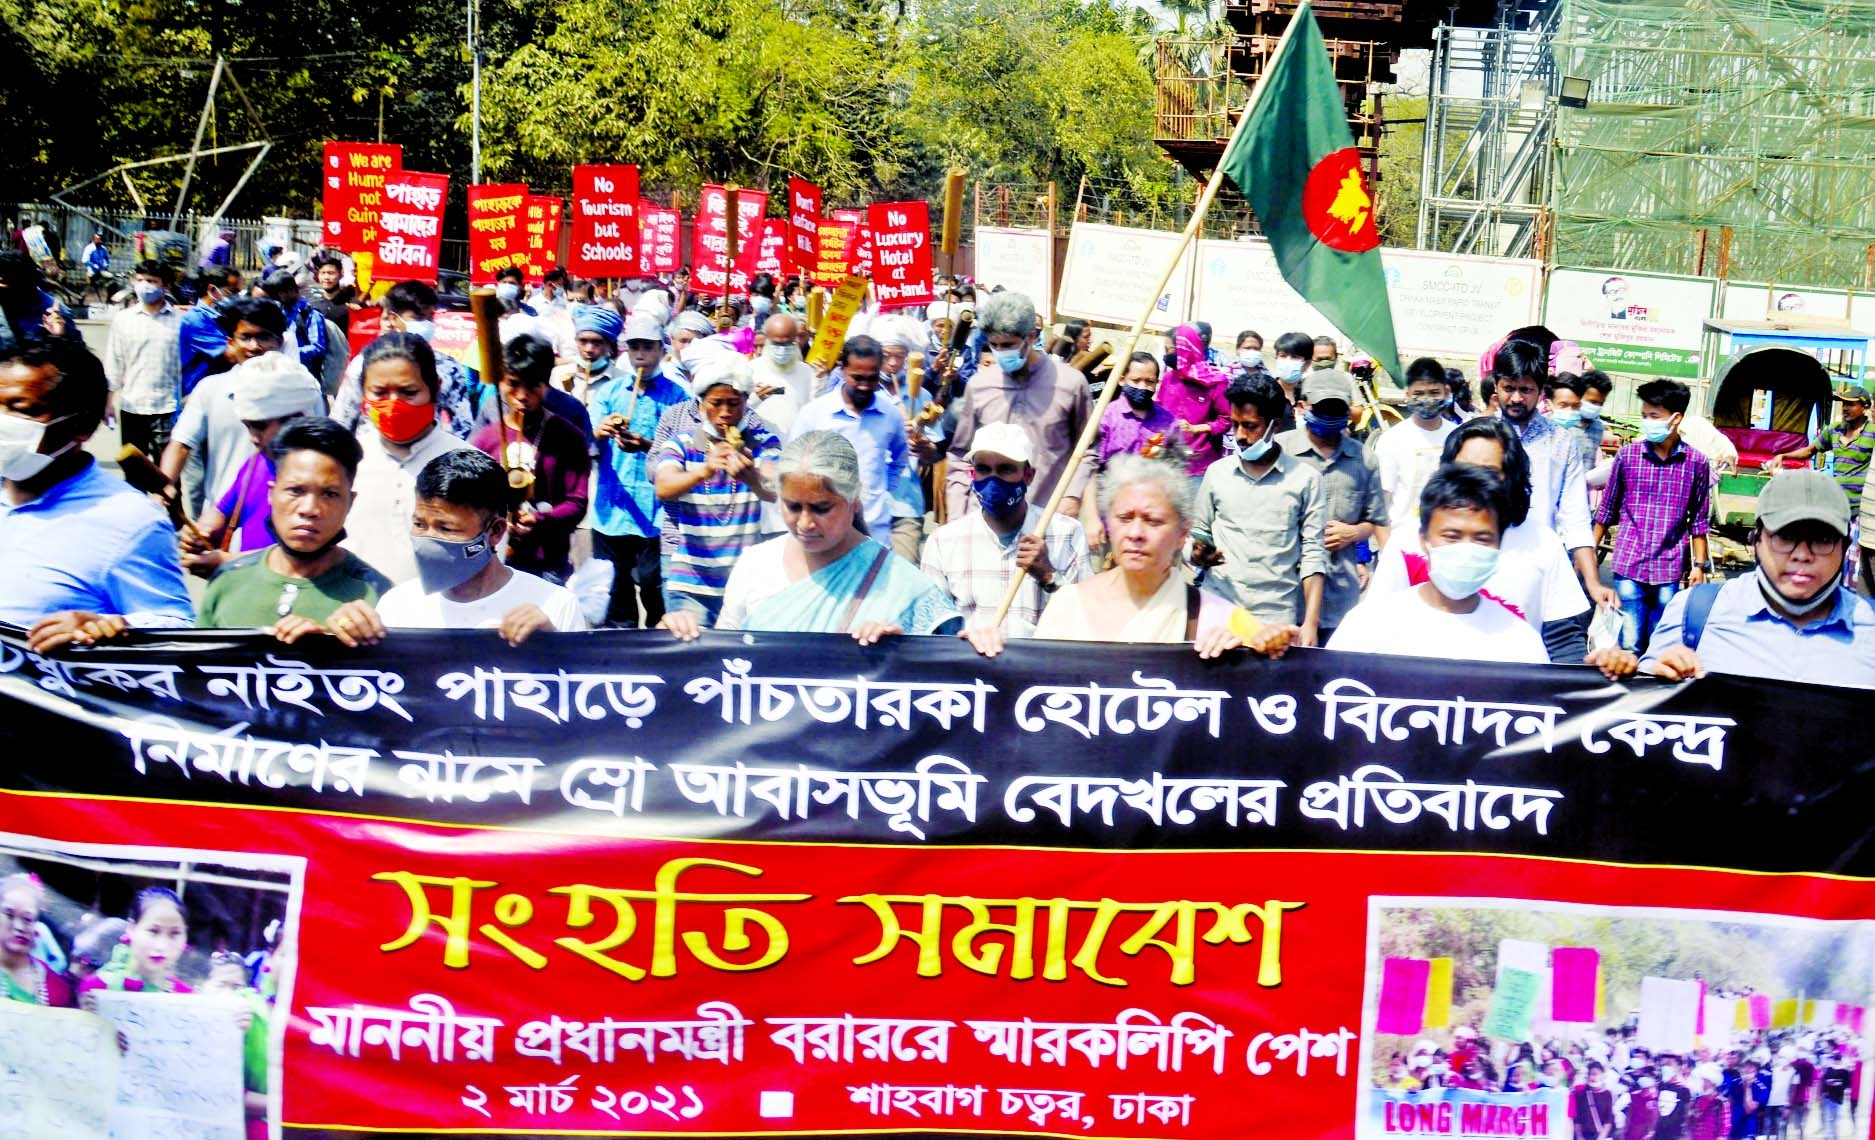 People of Mro community hold a rally